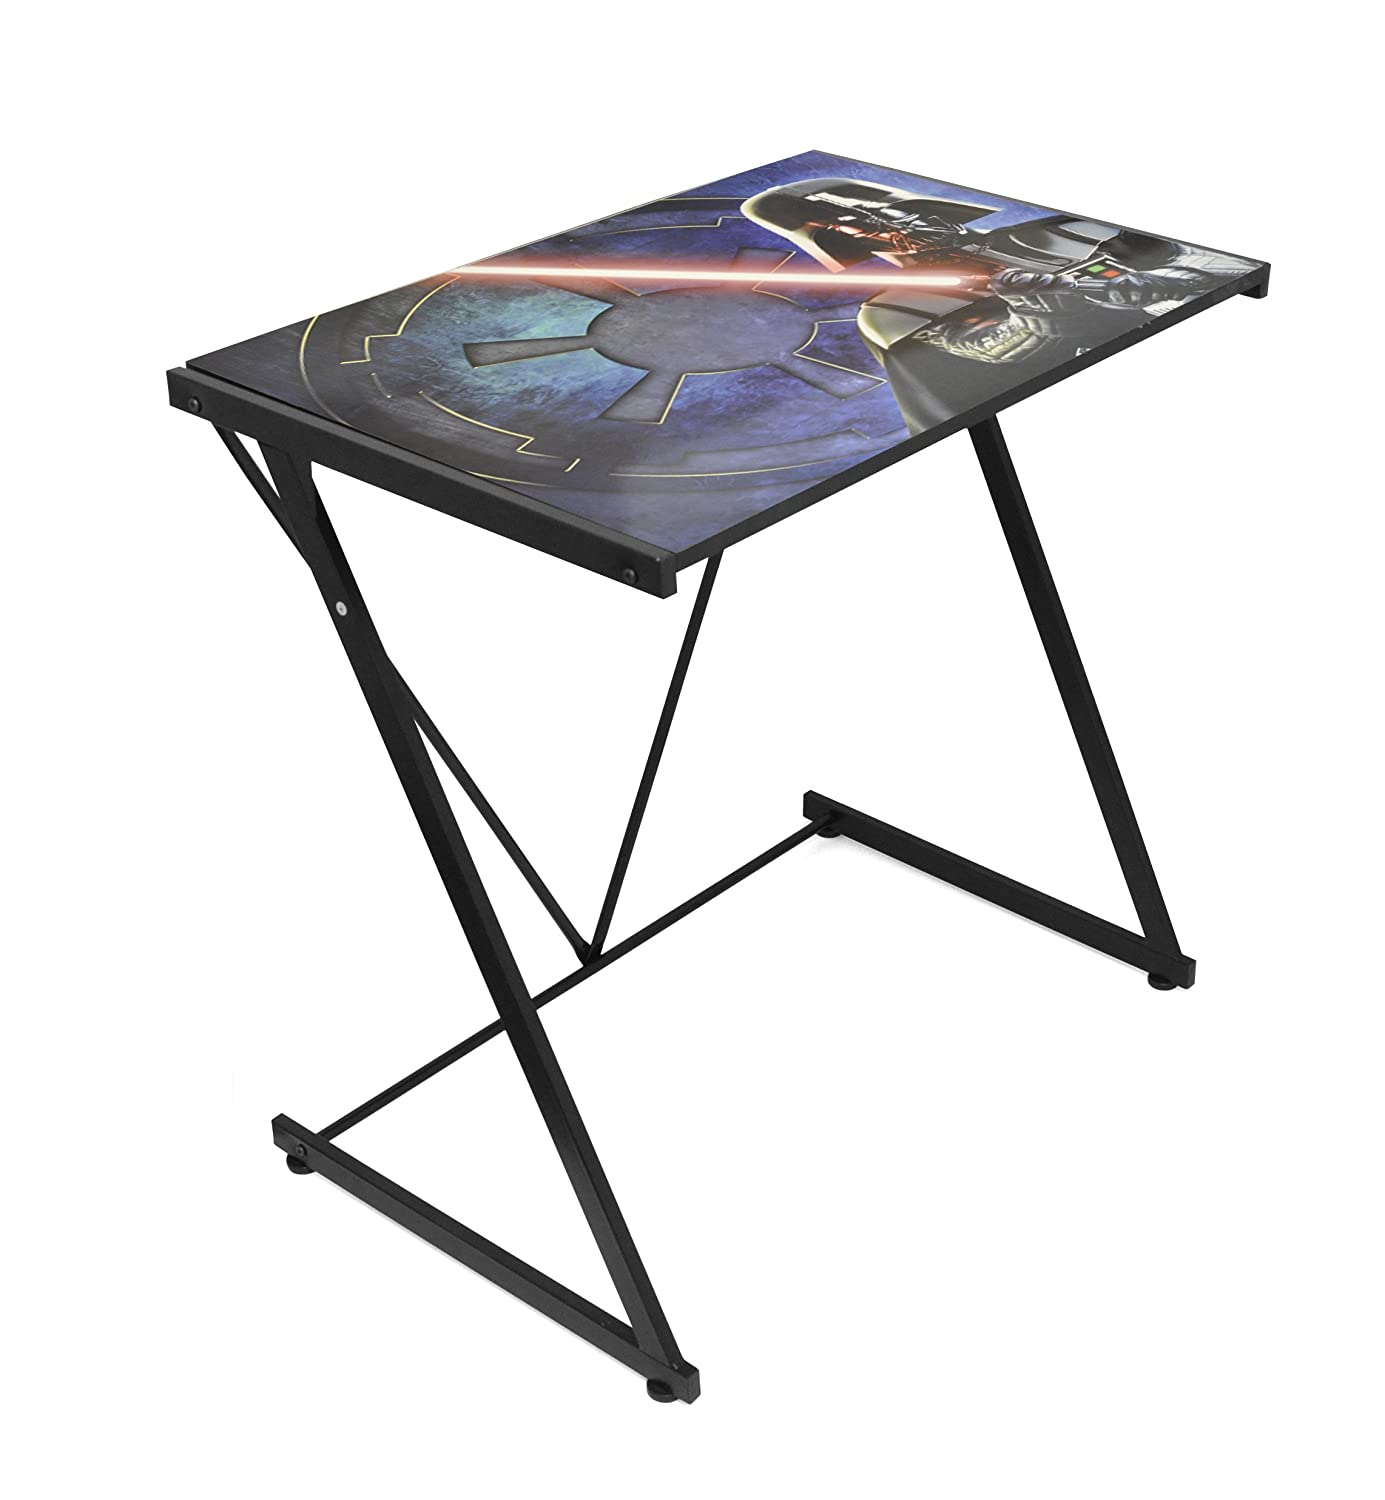 Disney Star Wars Darth Vader Z Table, 28 x 16 x 16